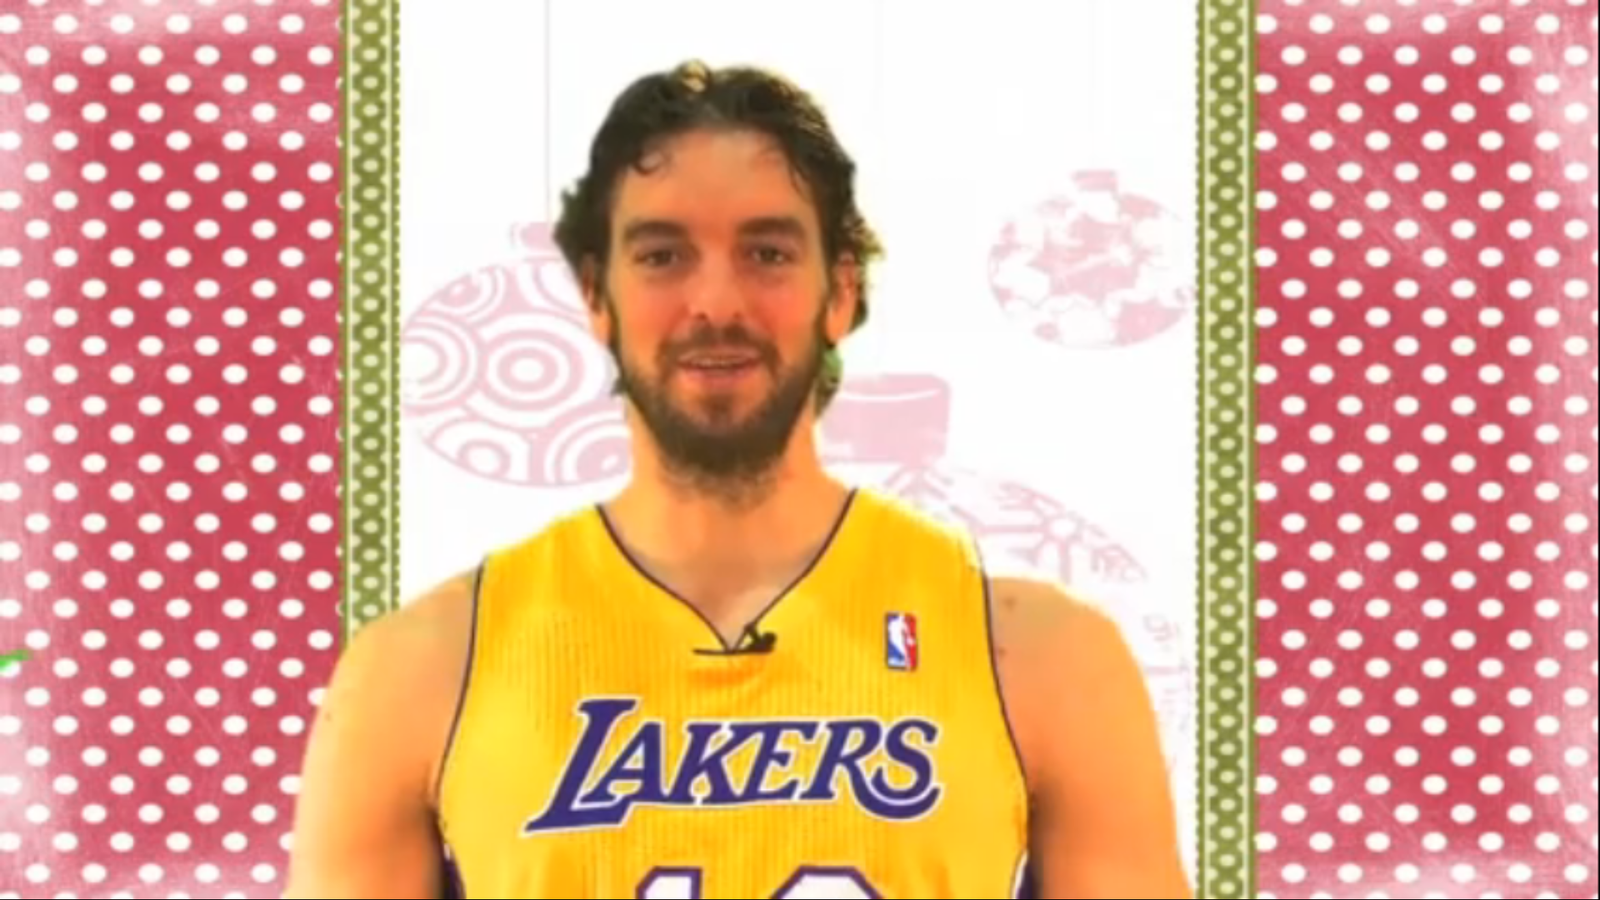 Pau Gasol s'entrebanca amb 'Jingle bells'